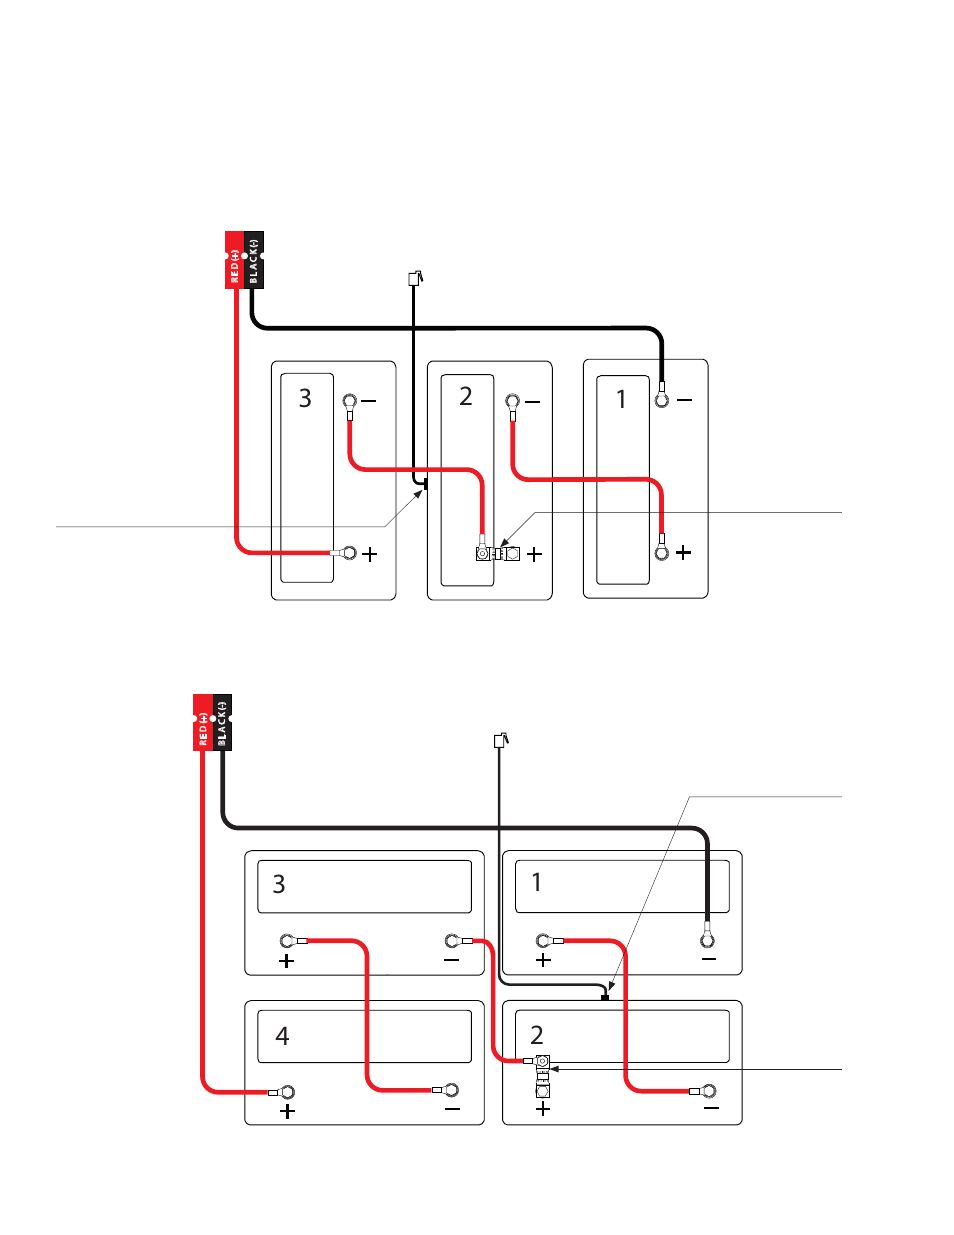 4 Battery Wiring Diagram Detailed Schematics Rack Alpha 5 Diagrams Technologies Pme Series User Selector Switch